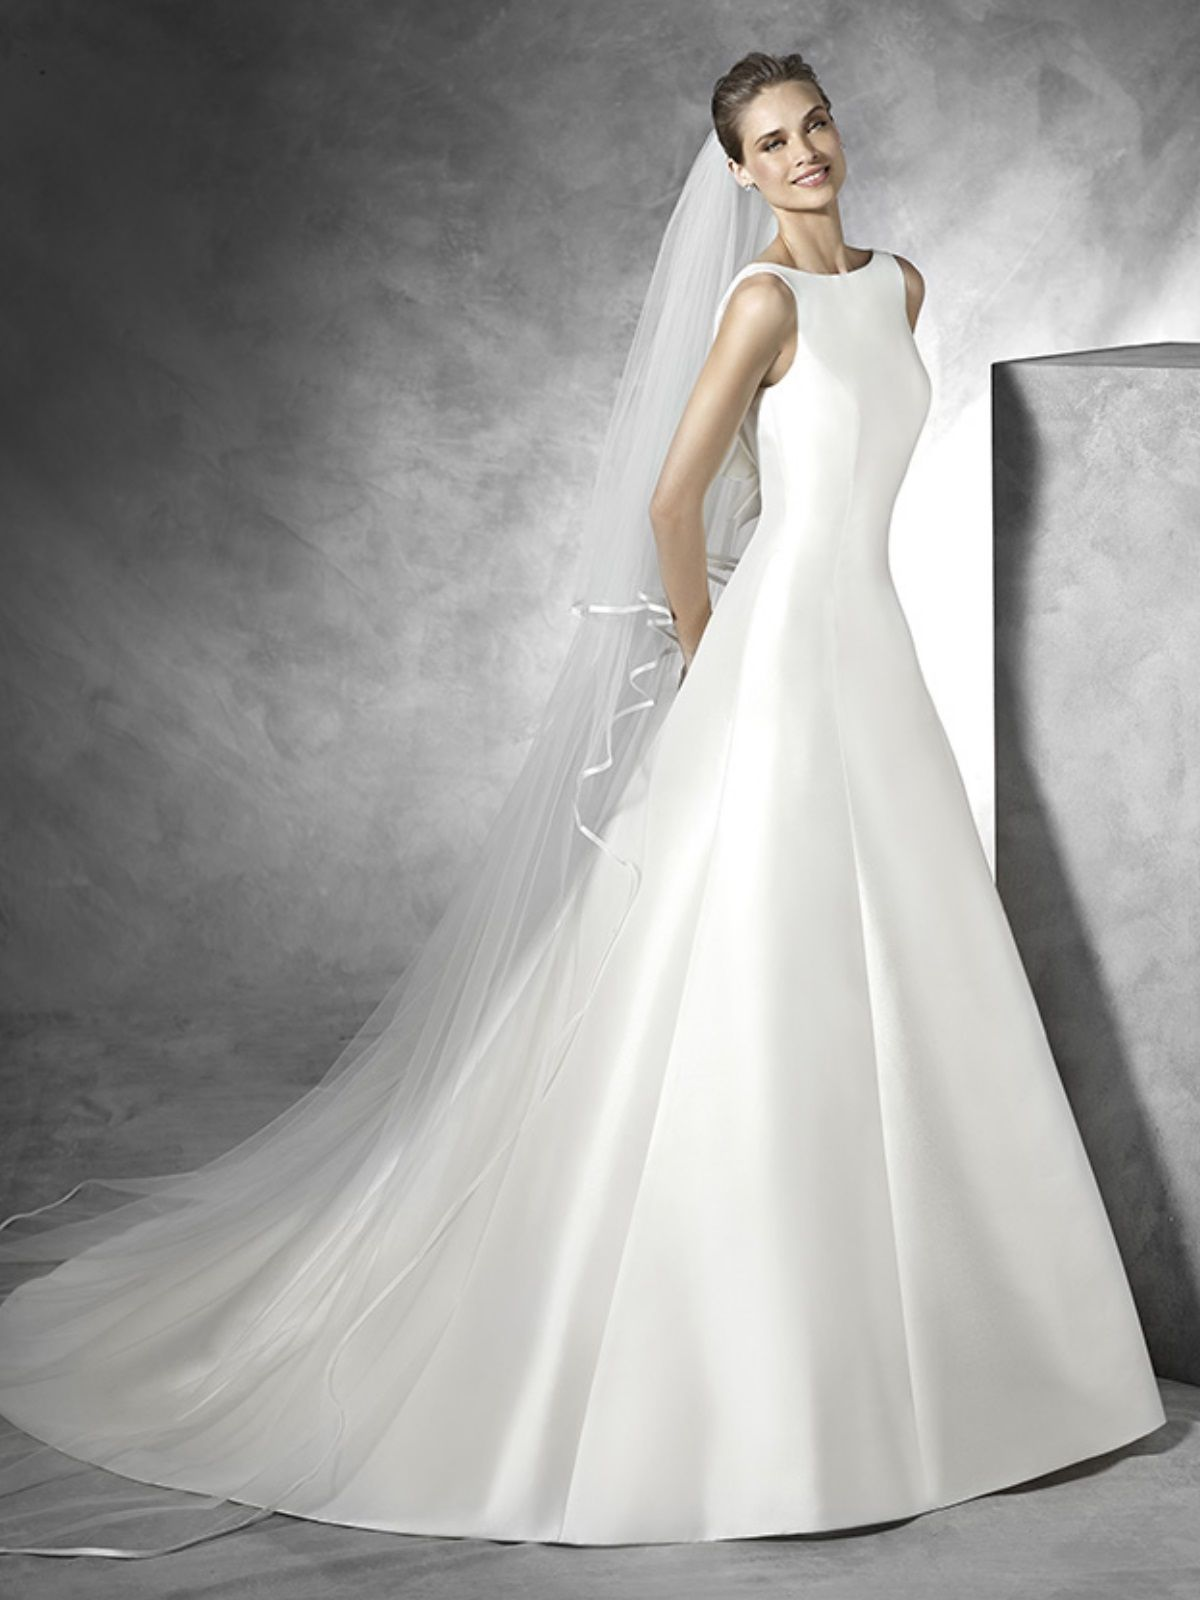 4987315e87b Stunning Mikado Satin A-line Wedding Dress - Tona by Pronovias ...